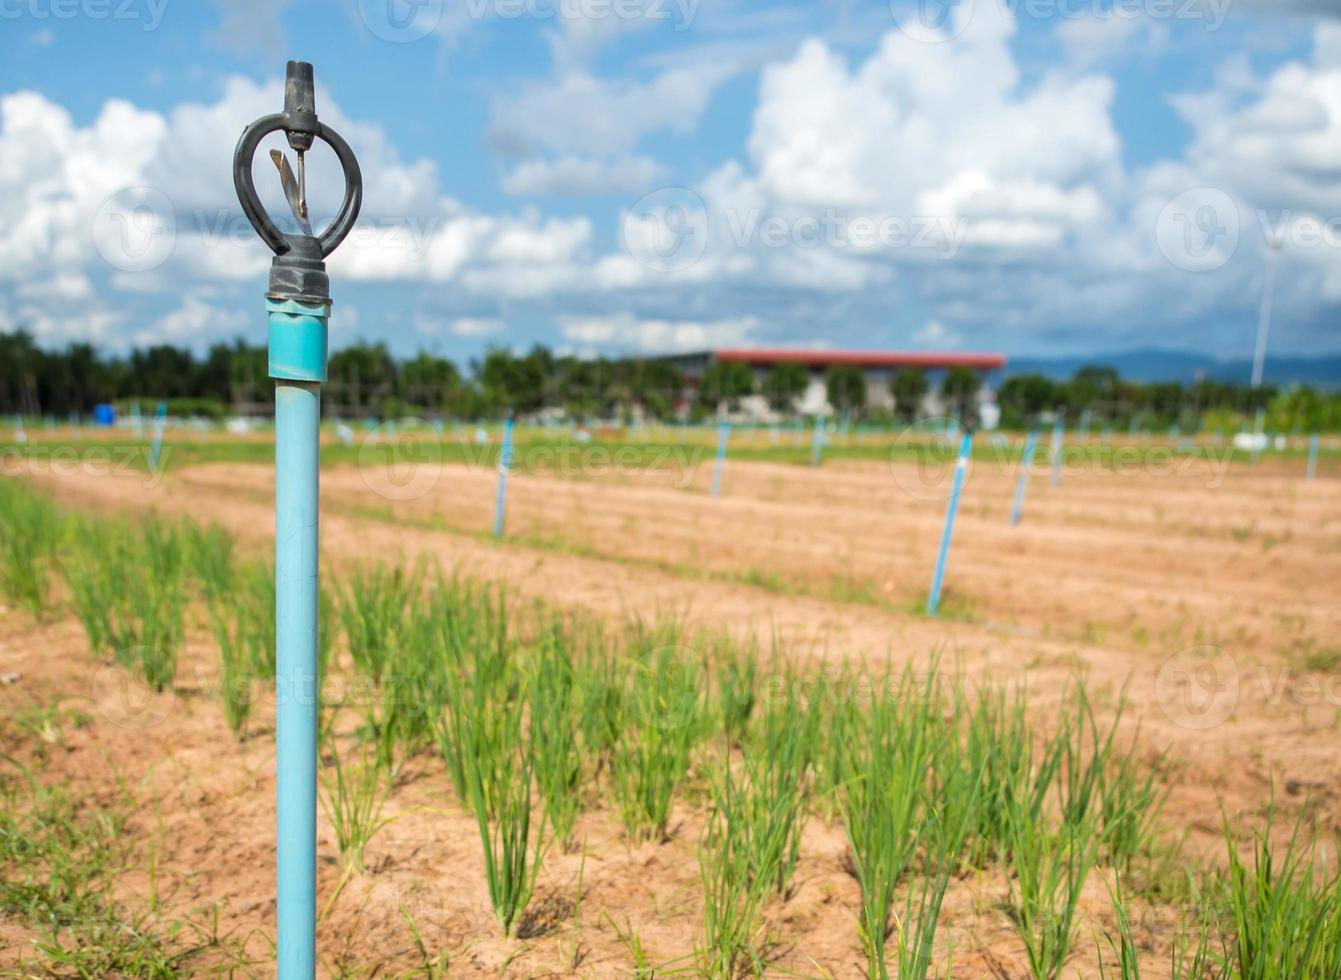 Sprinkler irrigation for agriculture field in developing country photo